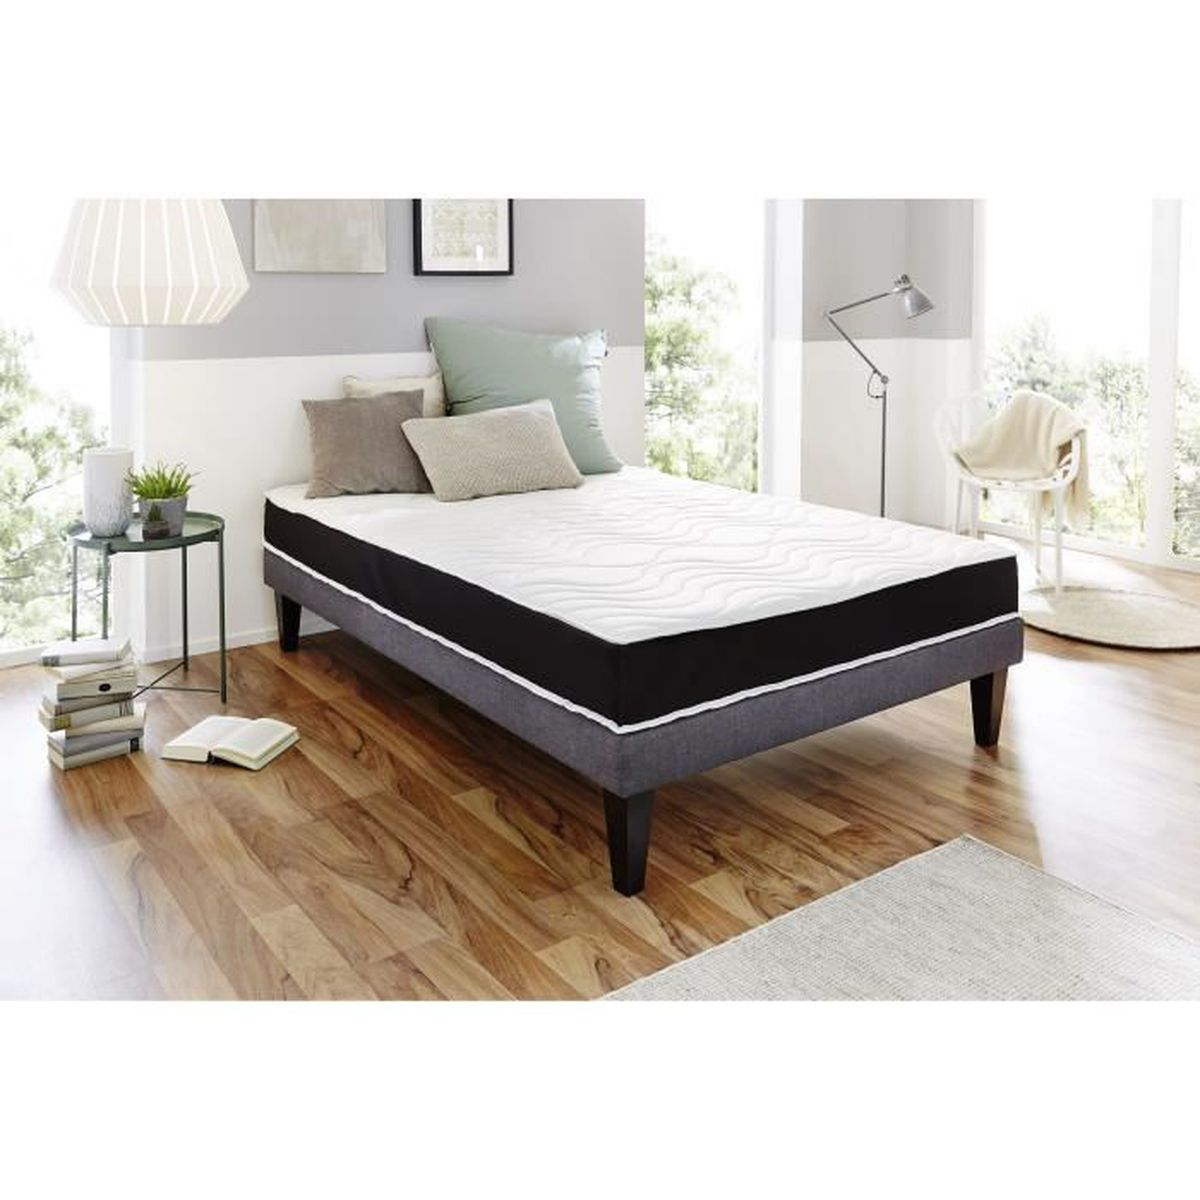 matelas 160 matelas 2017. Black Bedroom Furniture Sets. Home Design Ideas